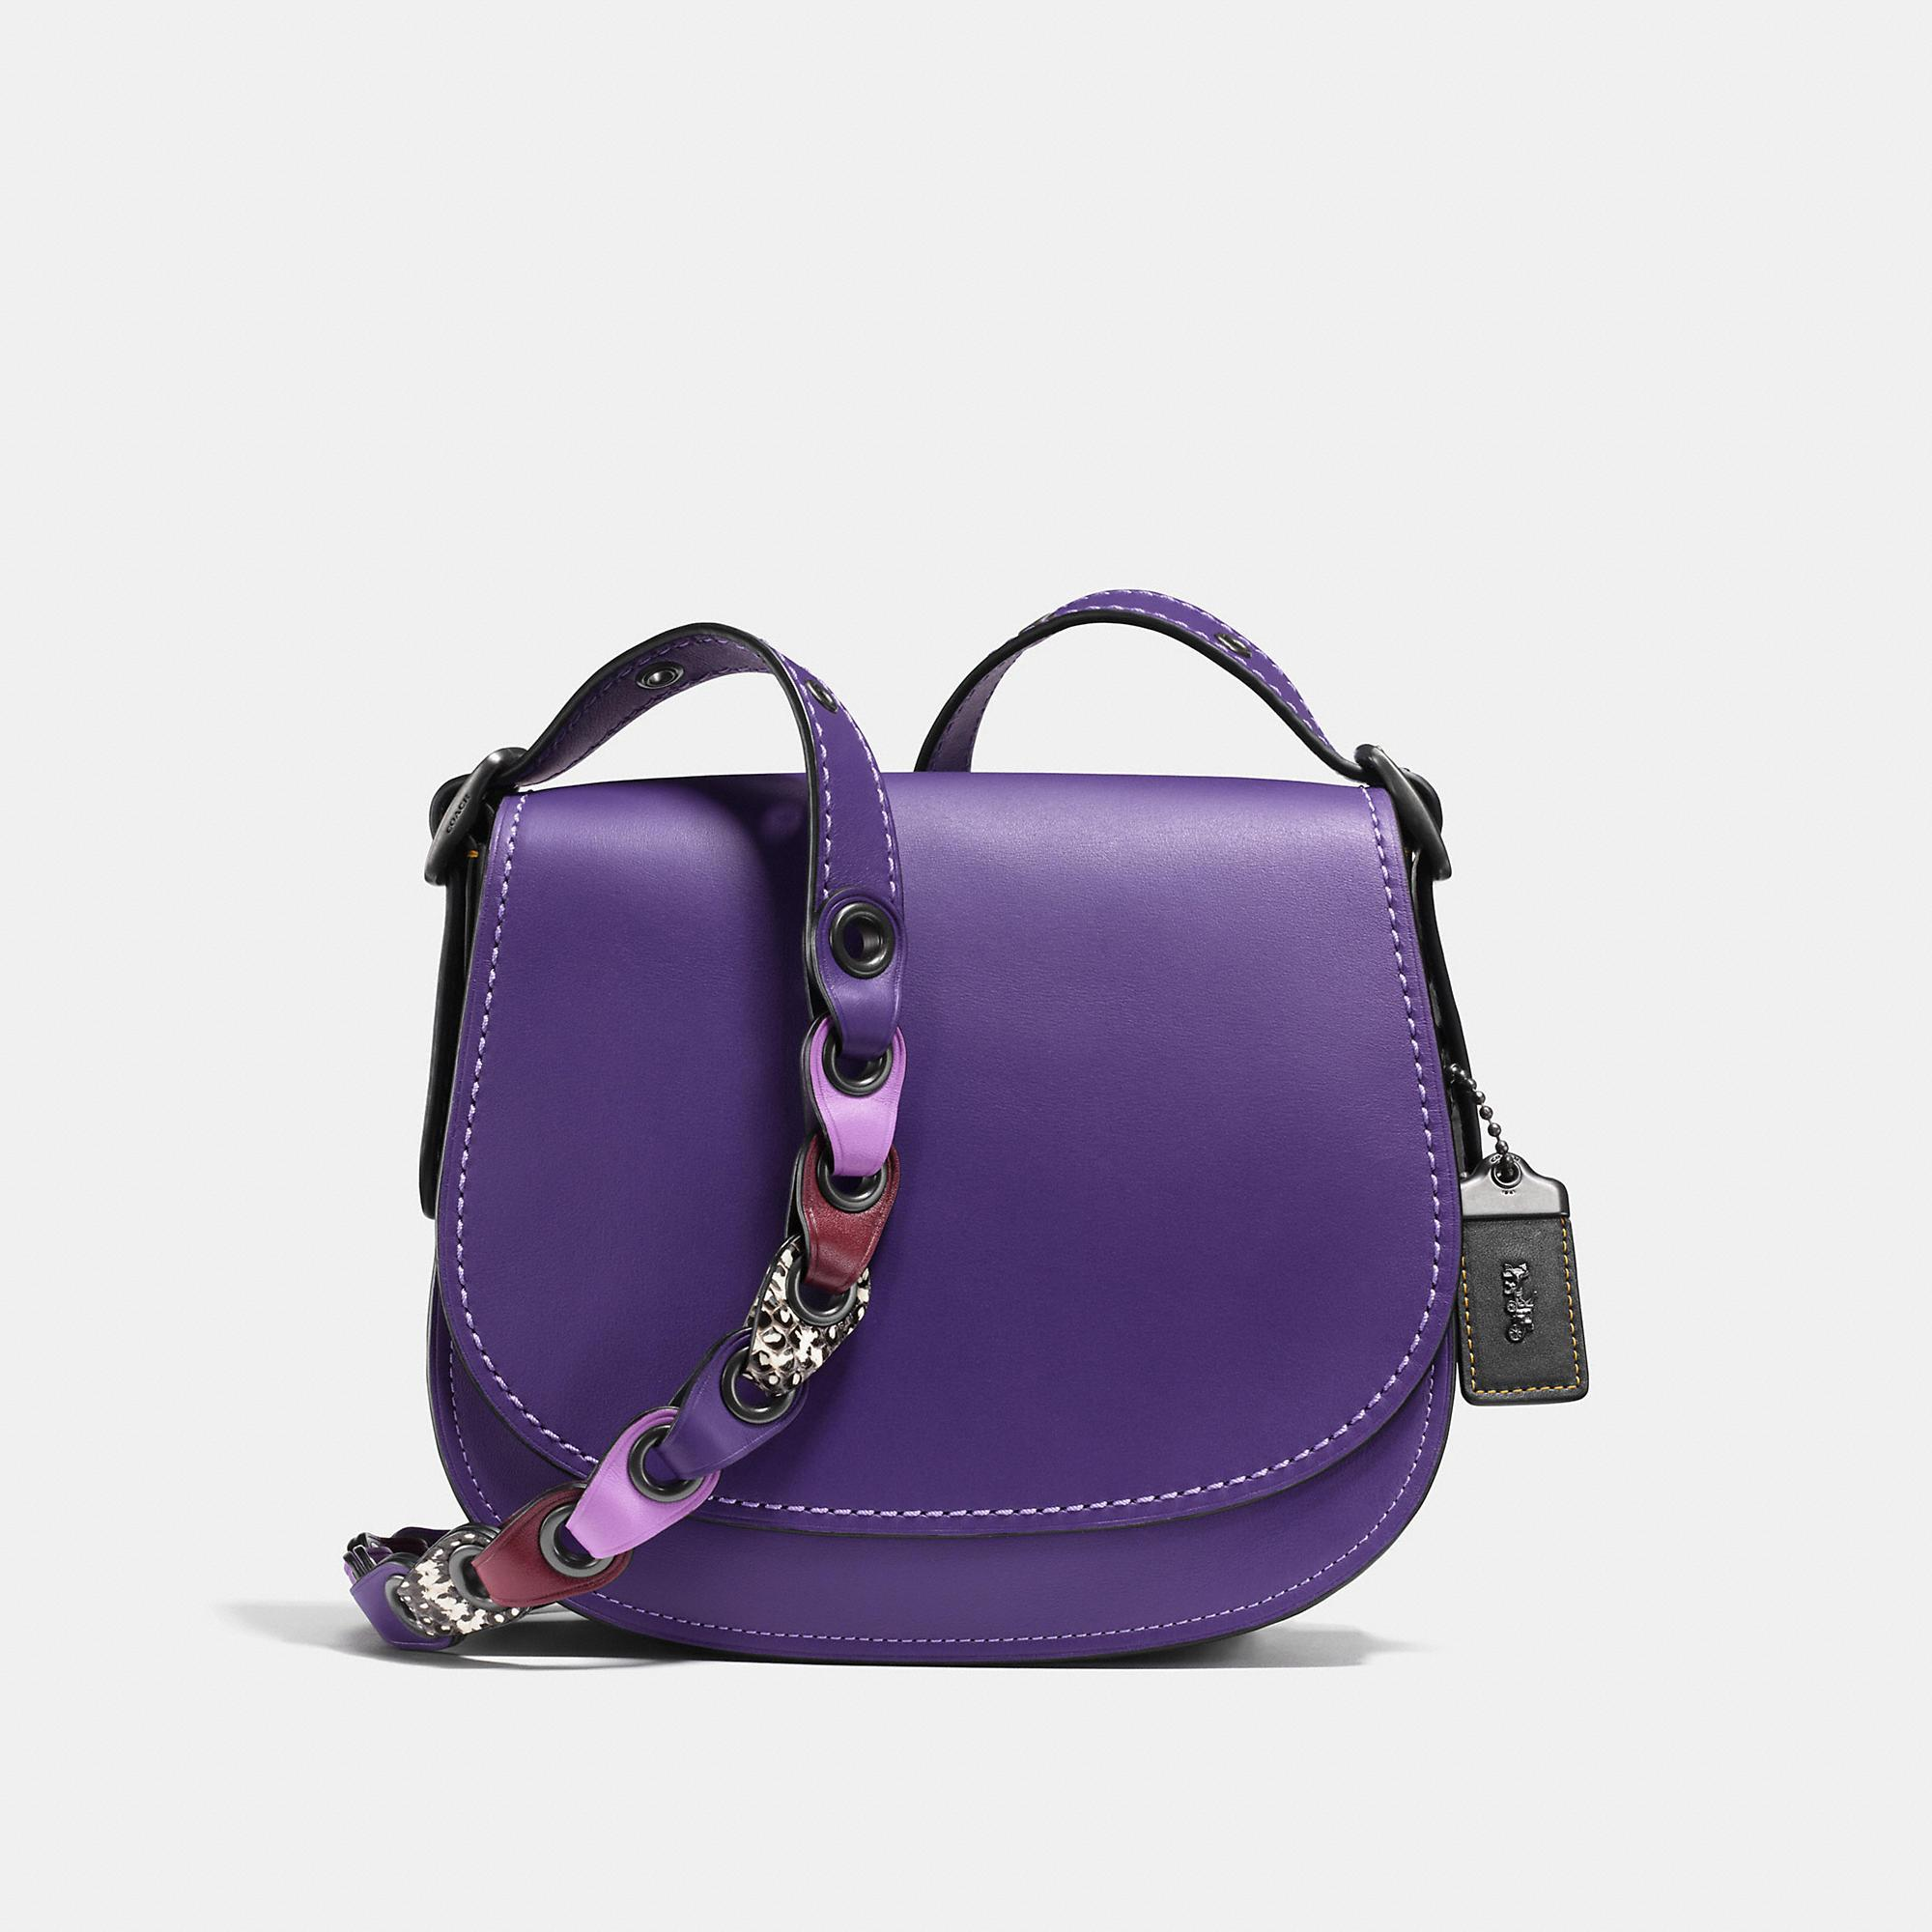 Coach Saddle 23 With Snakeskin Link Strap - Women's In Black Copper/violet Multi